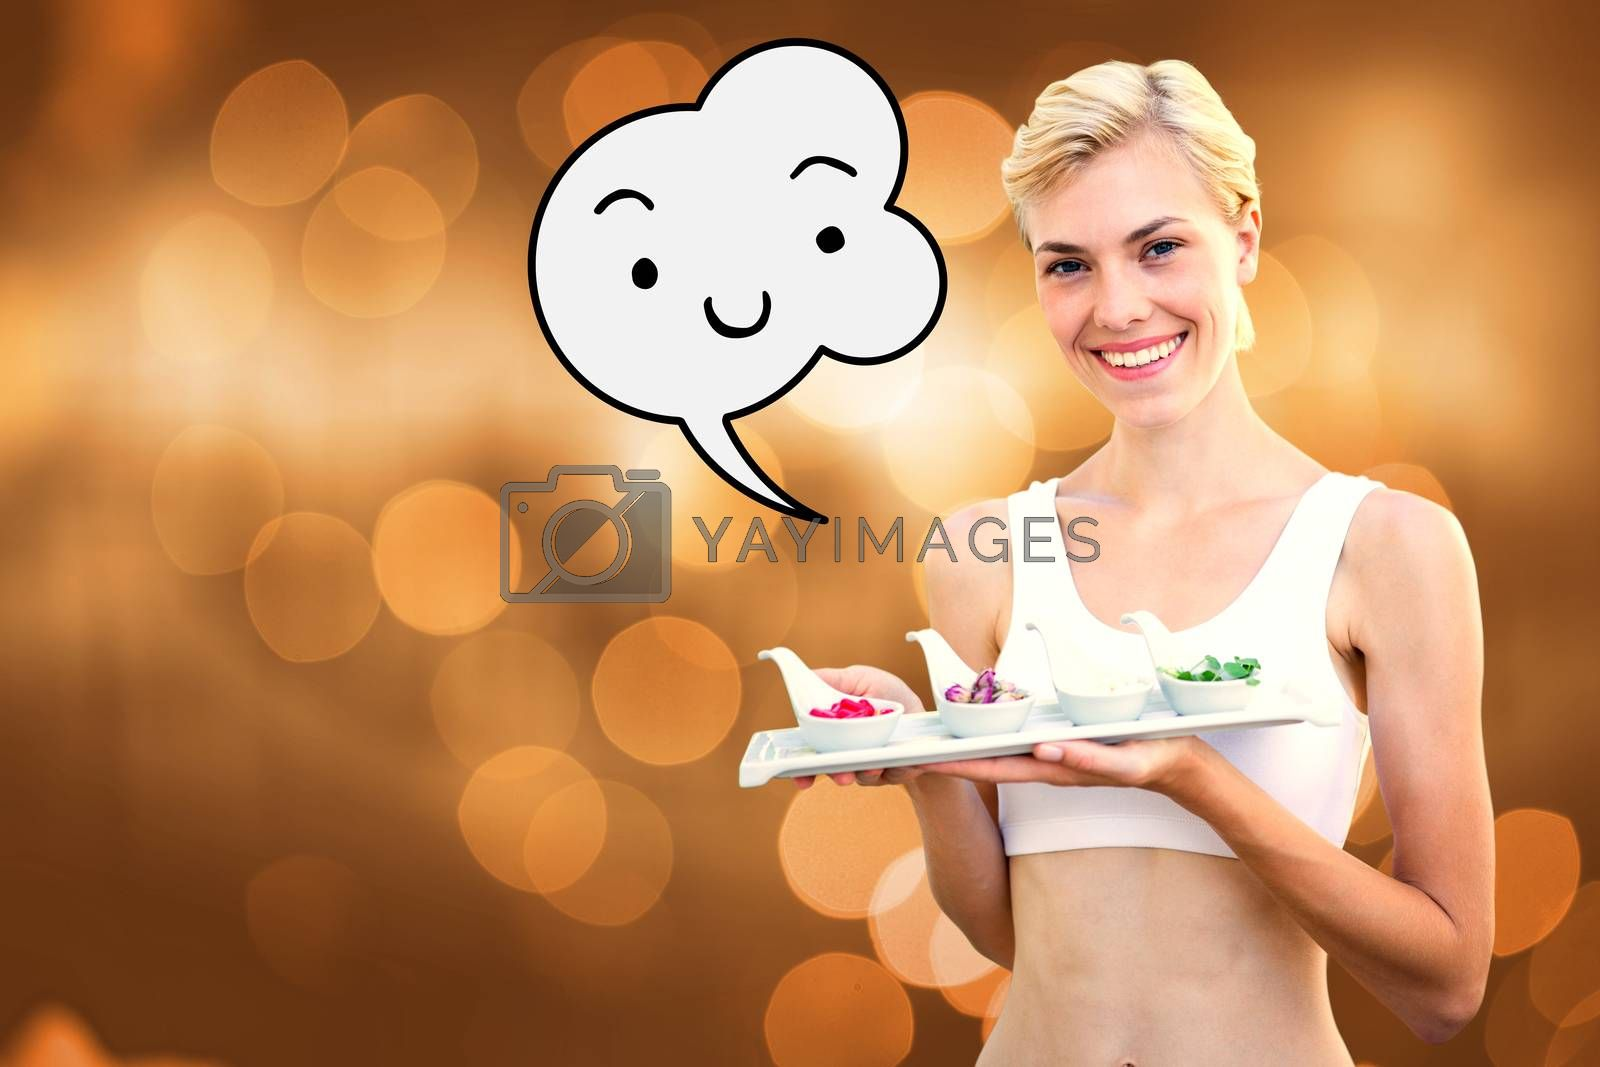 Happy blonde woman holding plate with herbal medicine against glowing background